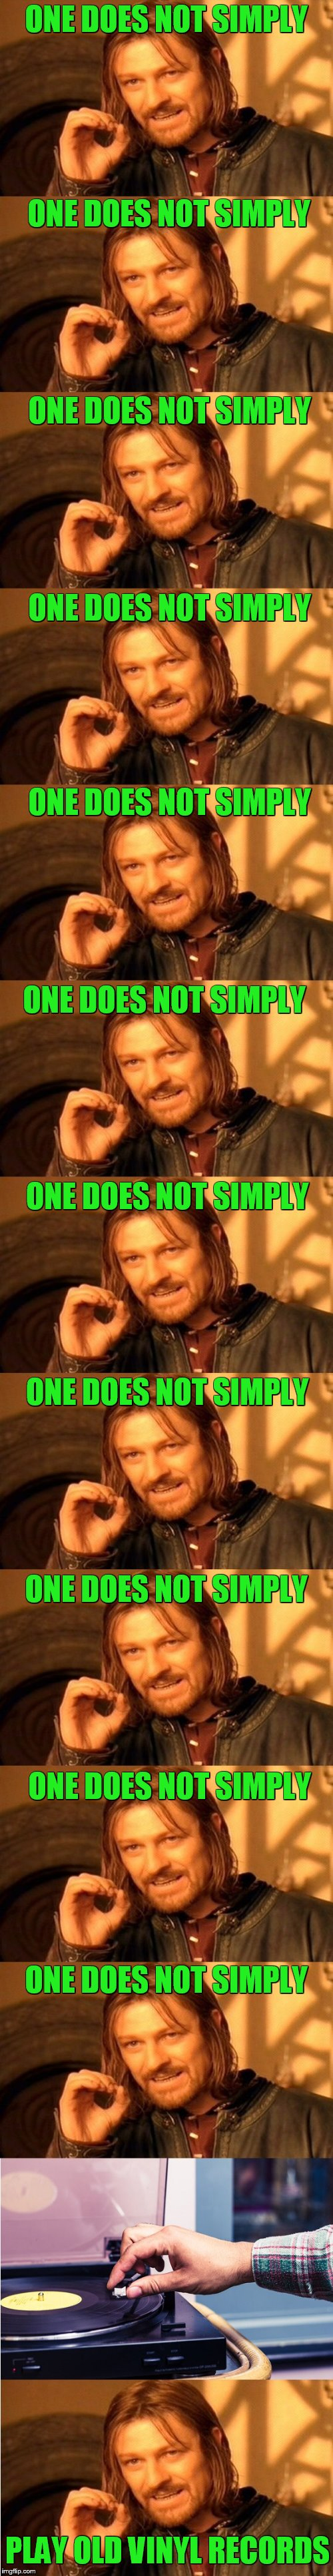 Sunday night at Hokeewolfs | ONE DOES NOT SIMPLY ONE DOES NOT SIMPLY ONE DOES NOT SIMPLY ONE DOES NOT SIMPLY ONE DOES NOT SIMPLY ONE DOES NOT SIMPLY ONE DOES NOT SIMPLY  | image tagged in one does not simply,playing vinyl records | made w/ Imgflip meme maker